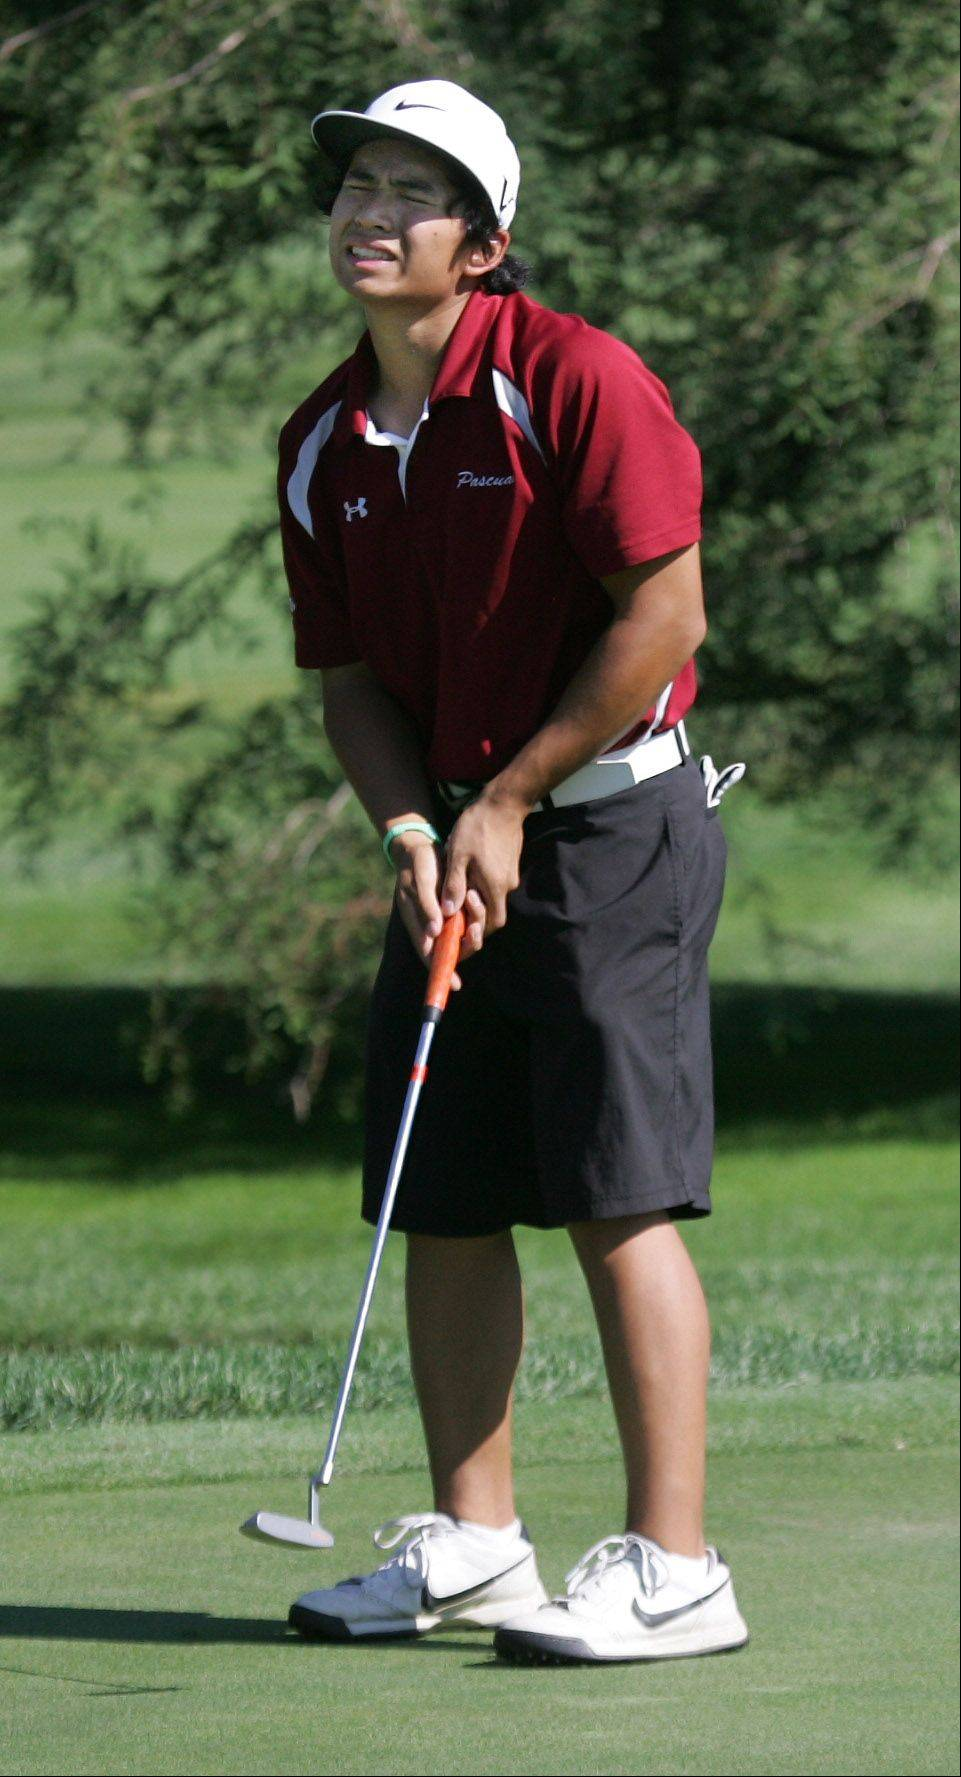 Antioch's Eric Pascual reacts after missing his putt on the 13th hole during the Biltmore Country Club Invitational boys golf tournament Monday in North Barrington.